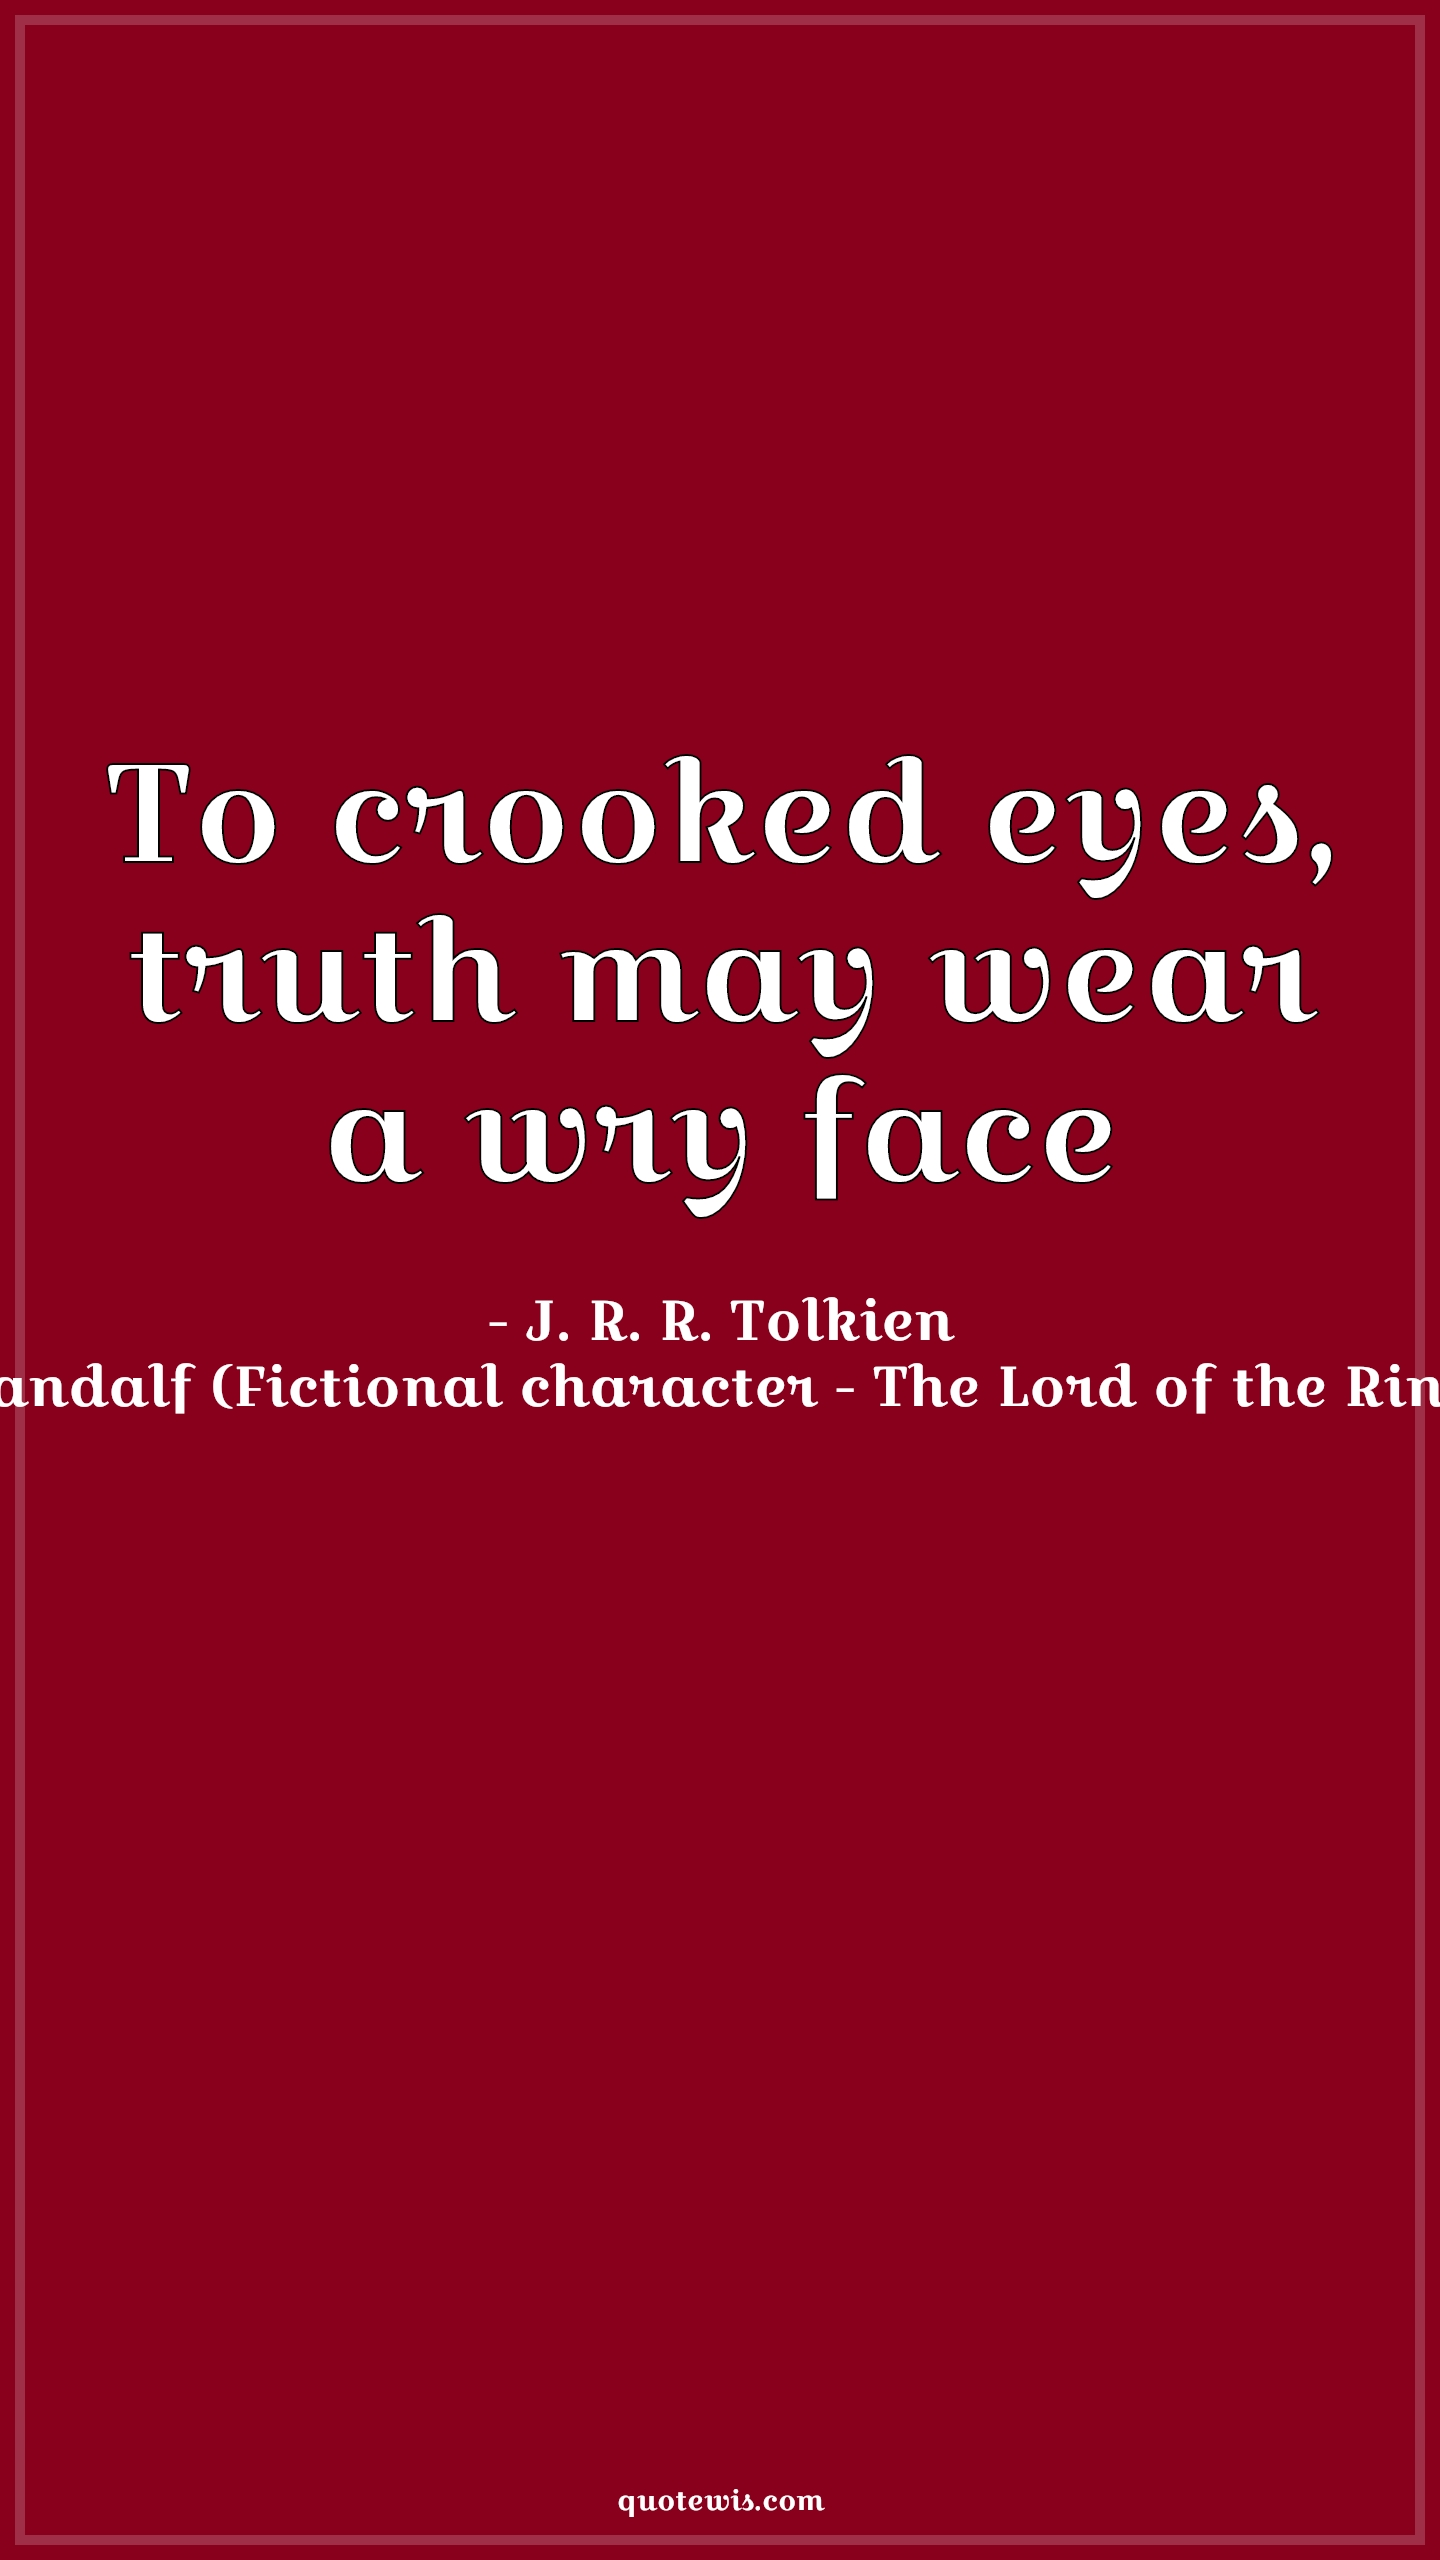 To crooked eyes, truth may wear a wry face